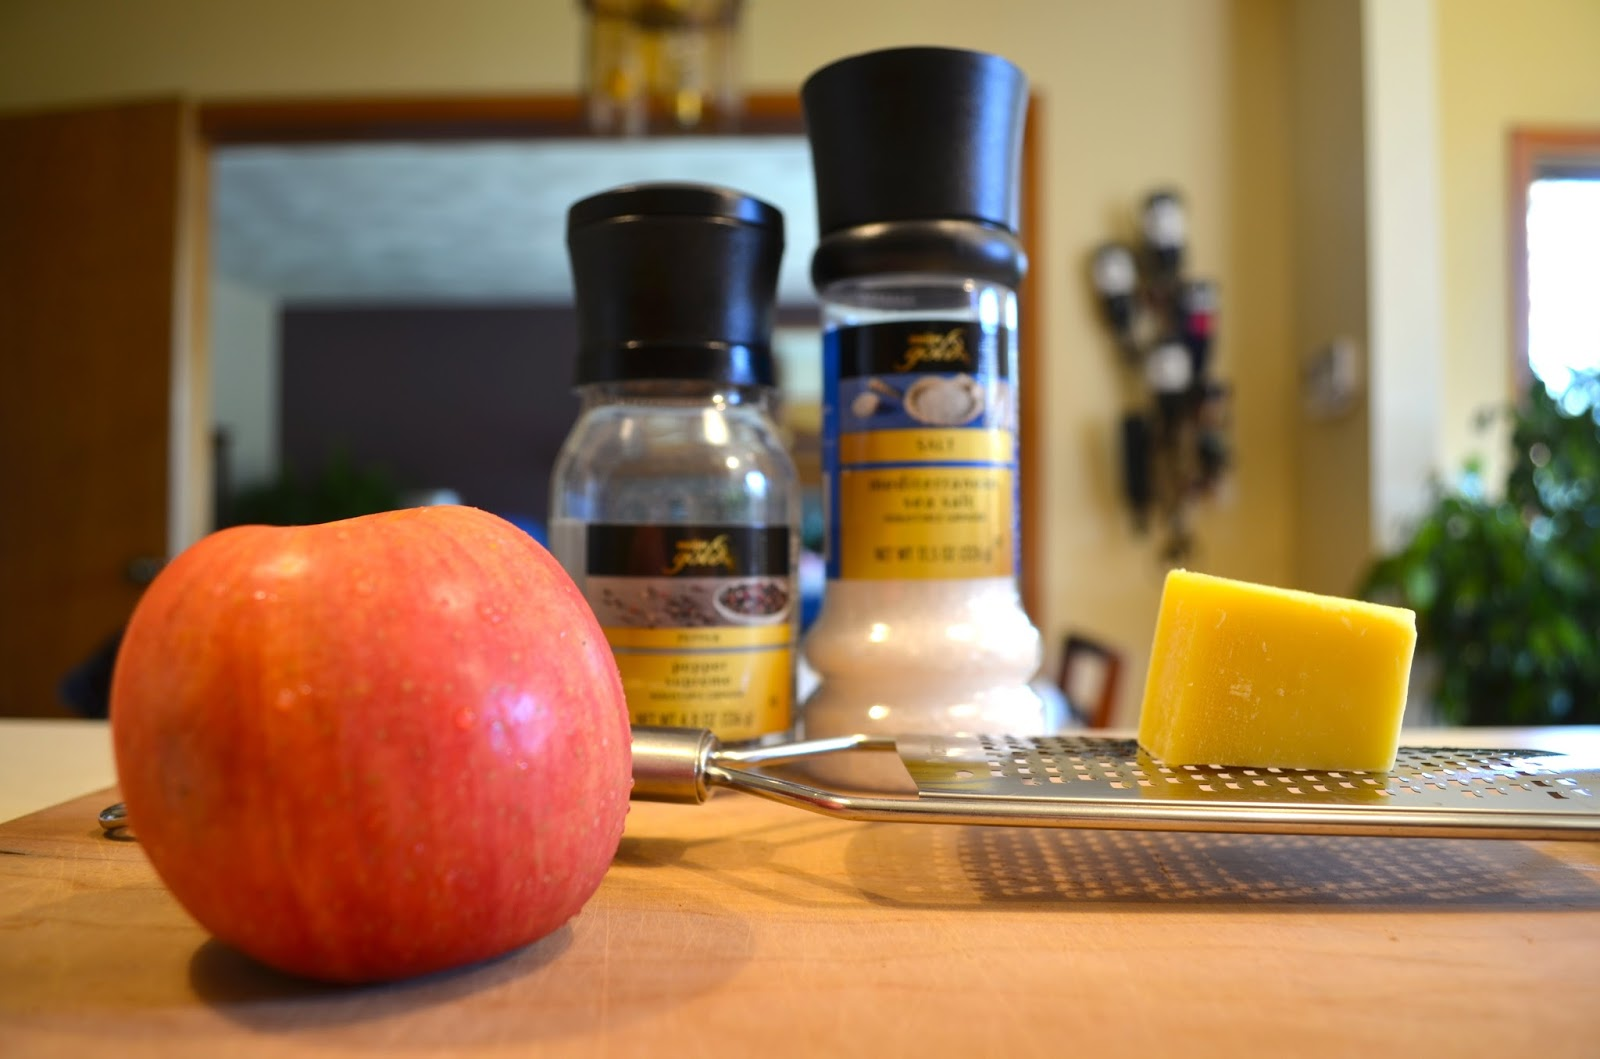 Ingredients for Baked Apples with Gruyere